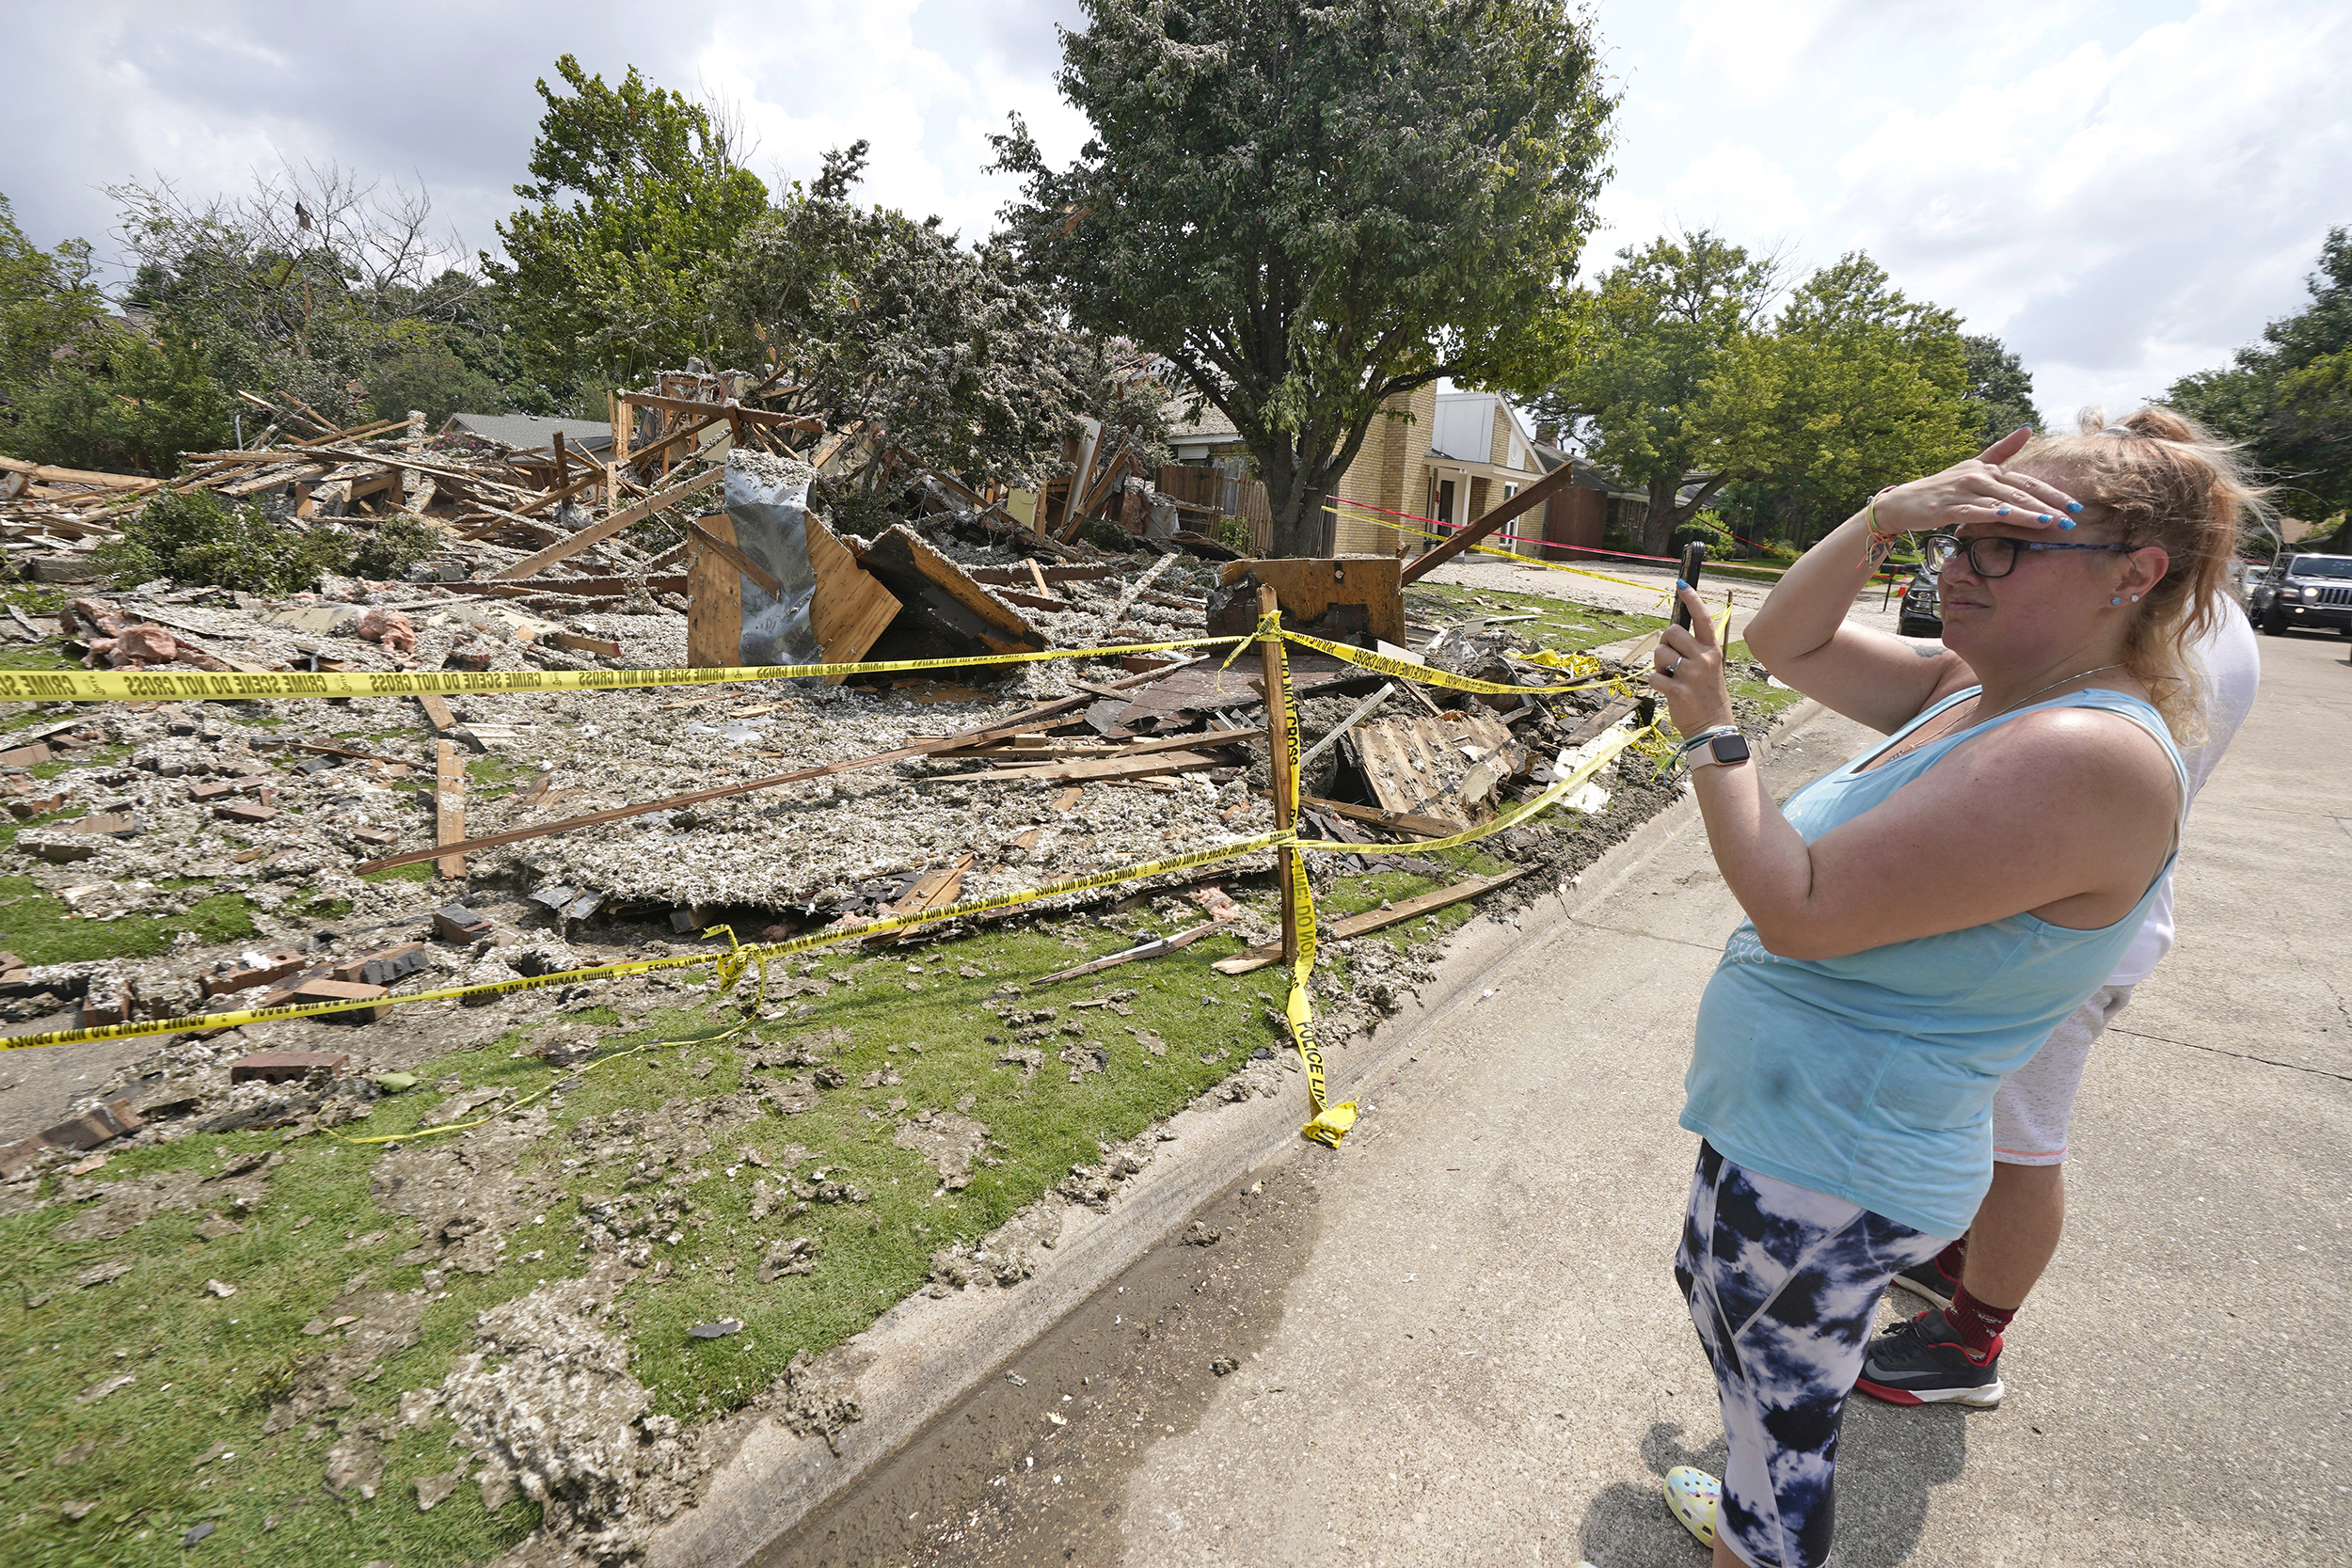 Texas house explosion that injured 6 may have been intentional